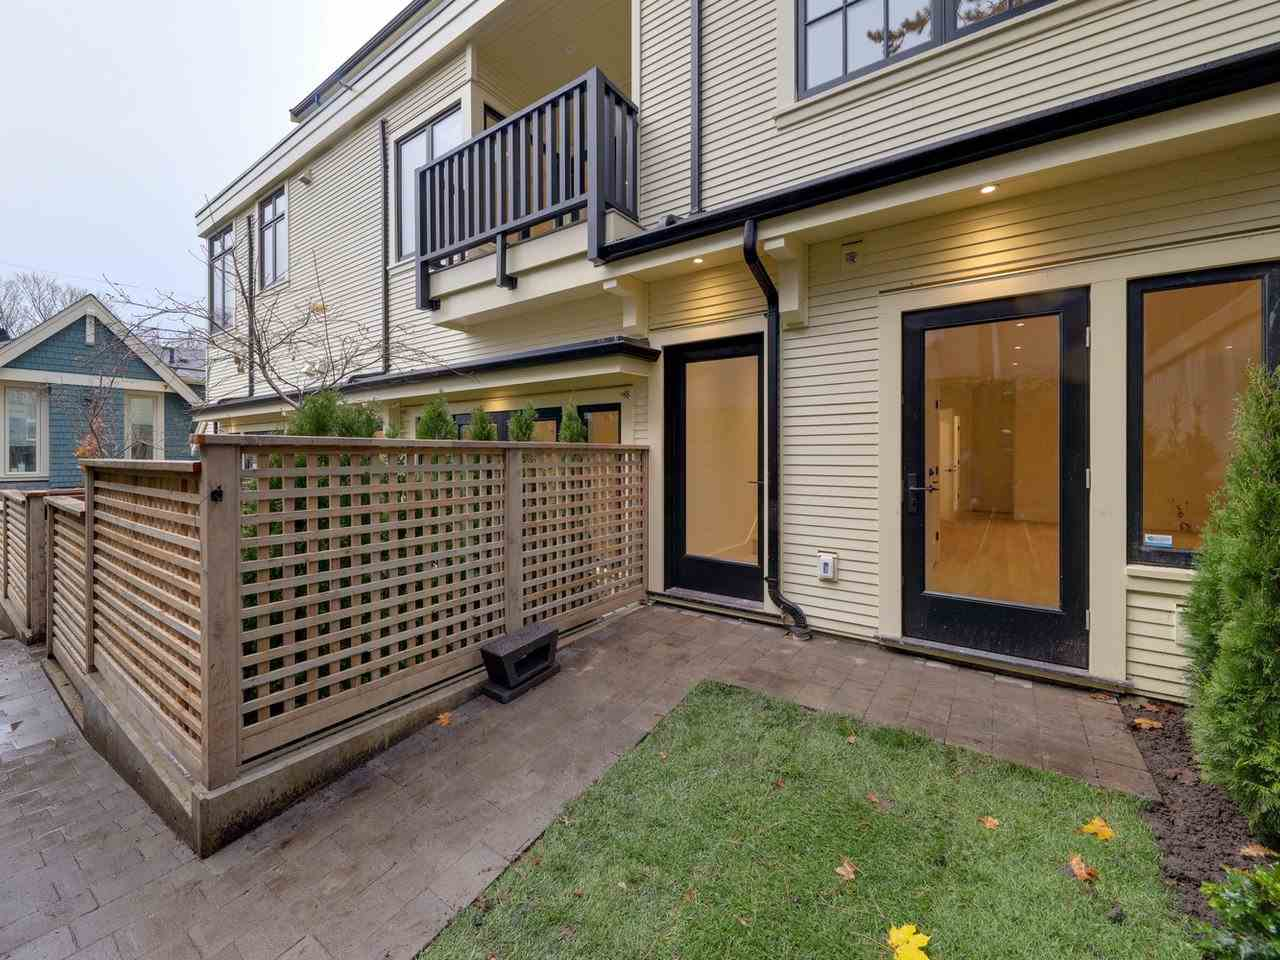 809 W 23 AVENUE - Cambie Townhouse for sale, 3 Bedrooms (R2518236) - #35